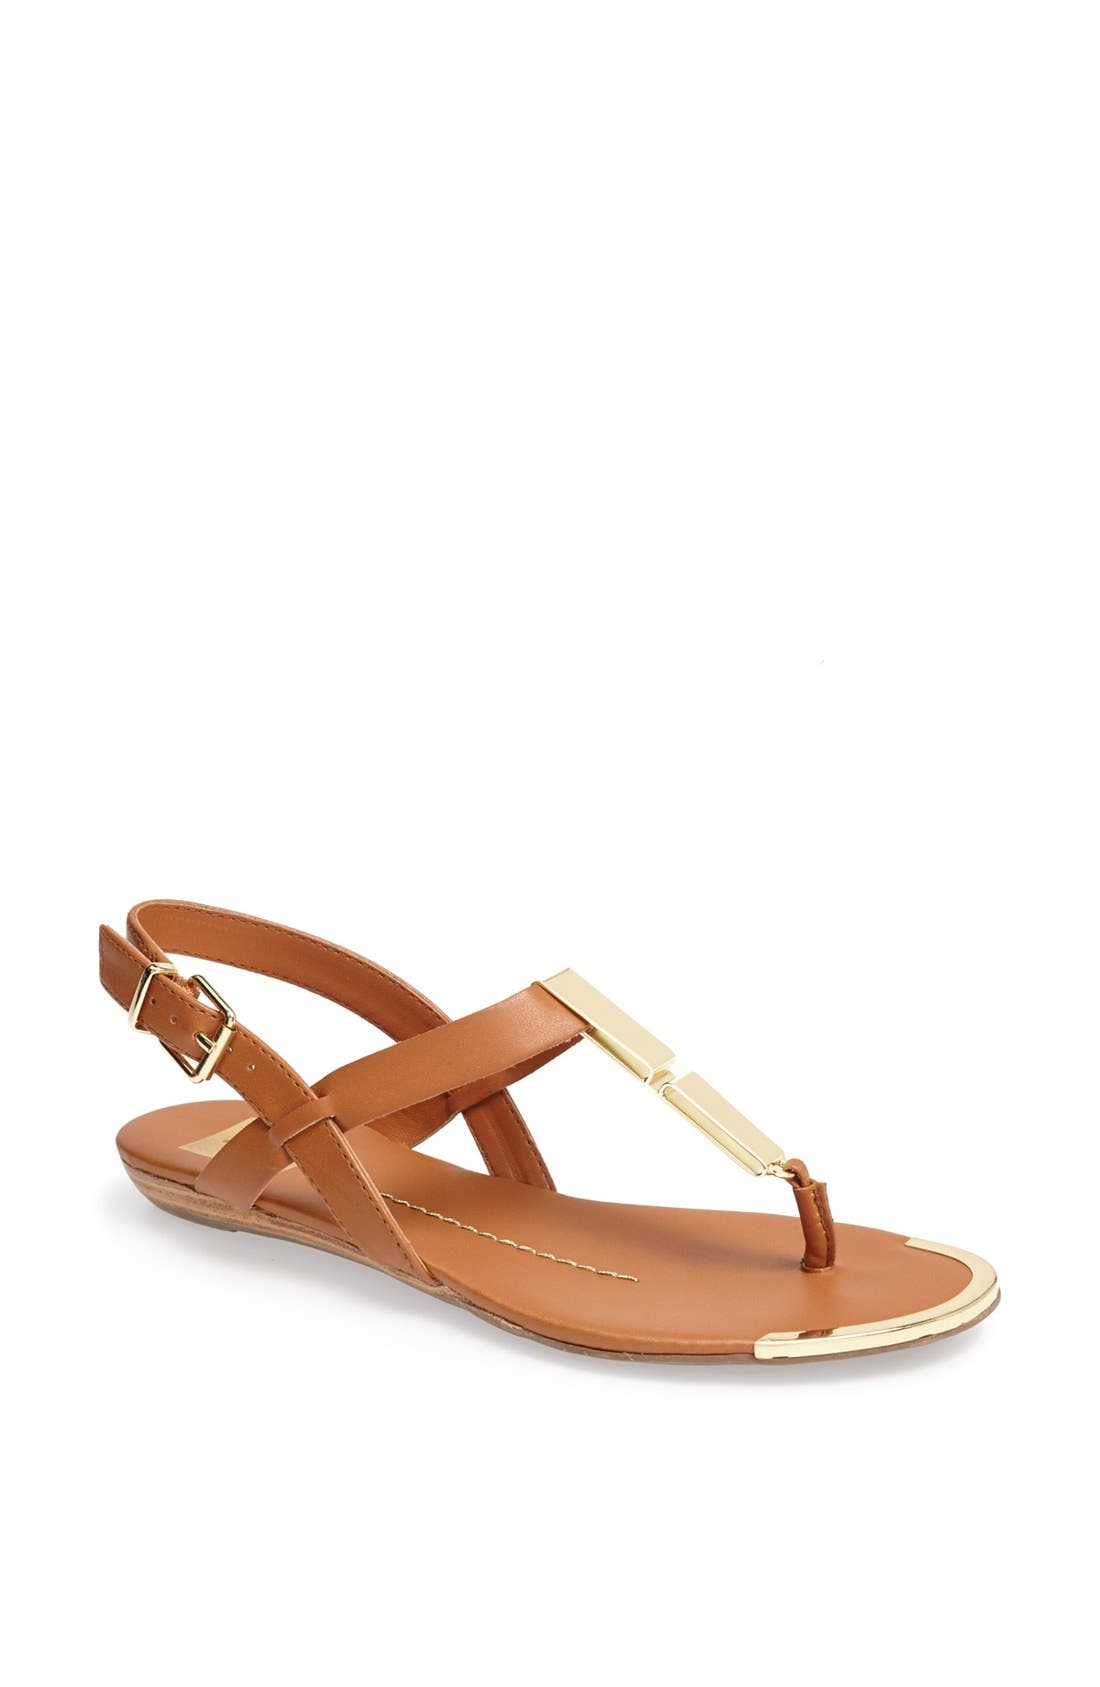 Main Image - DV by Dolce Vita 'Abley' Thong Sandal